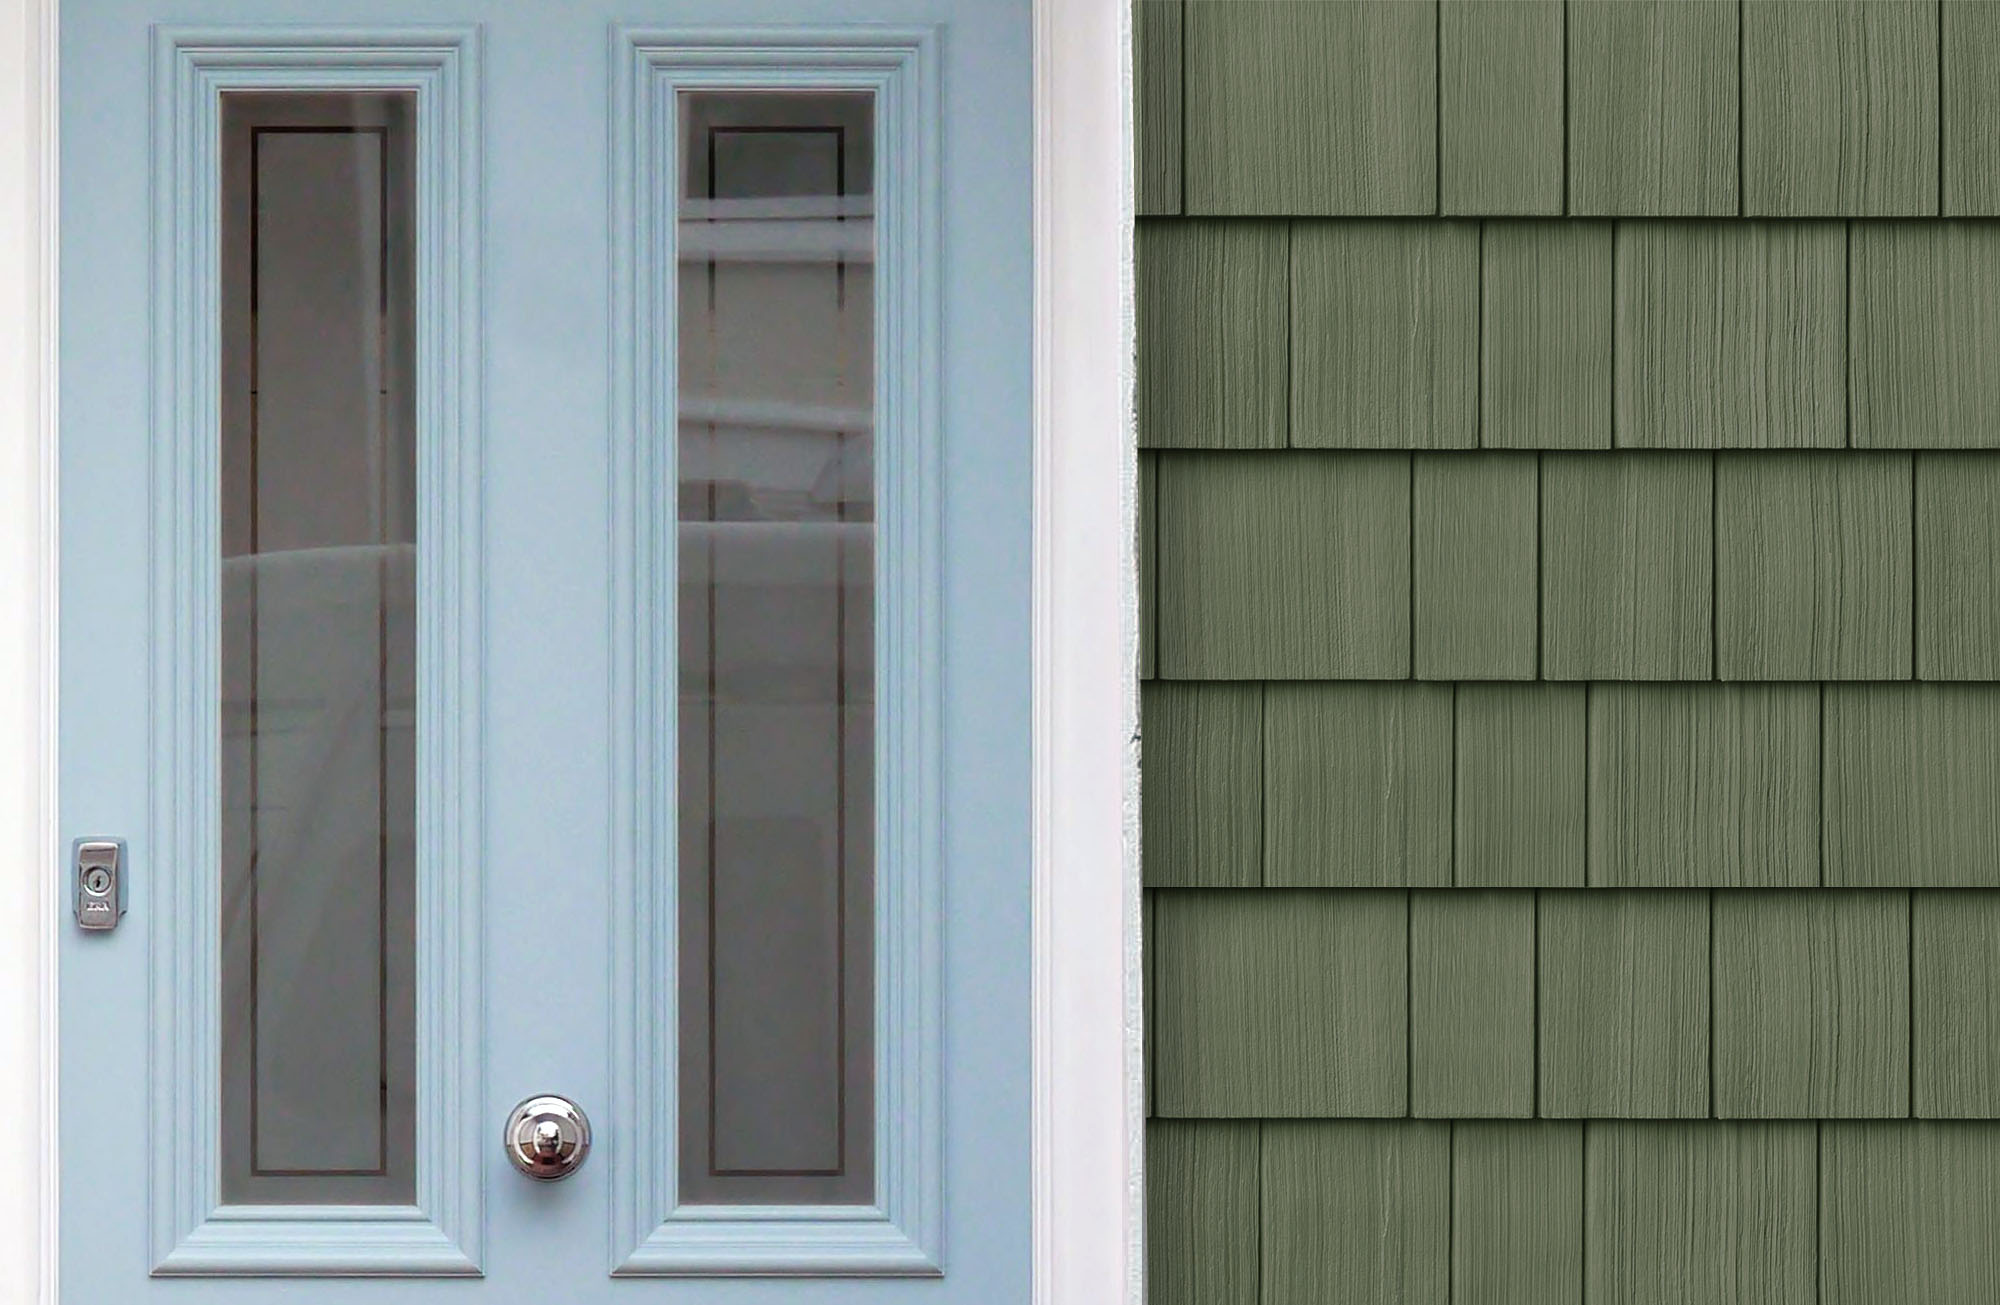 Green house with cedar shake siding and a pale blue front door.